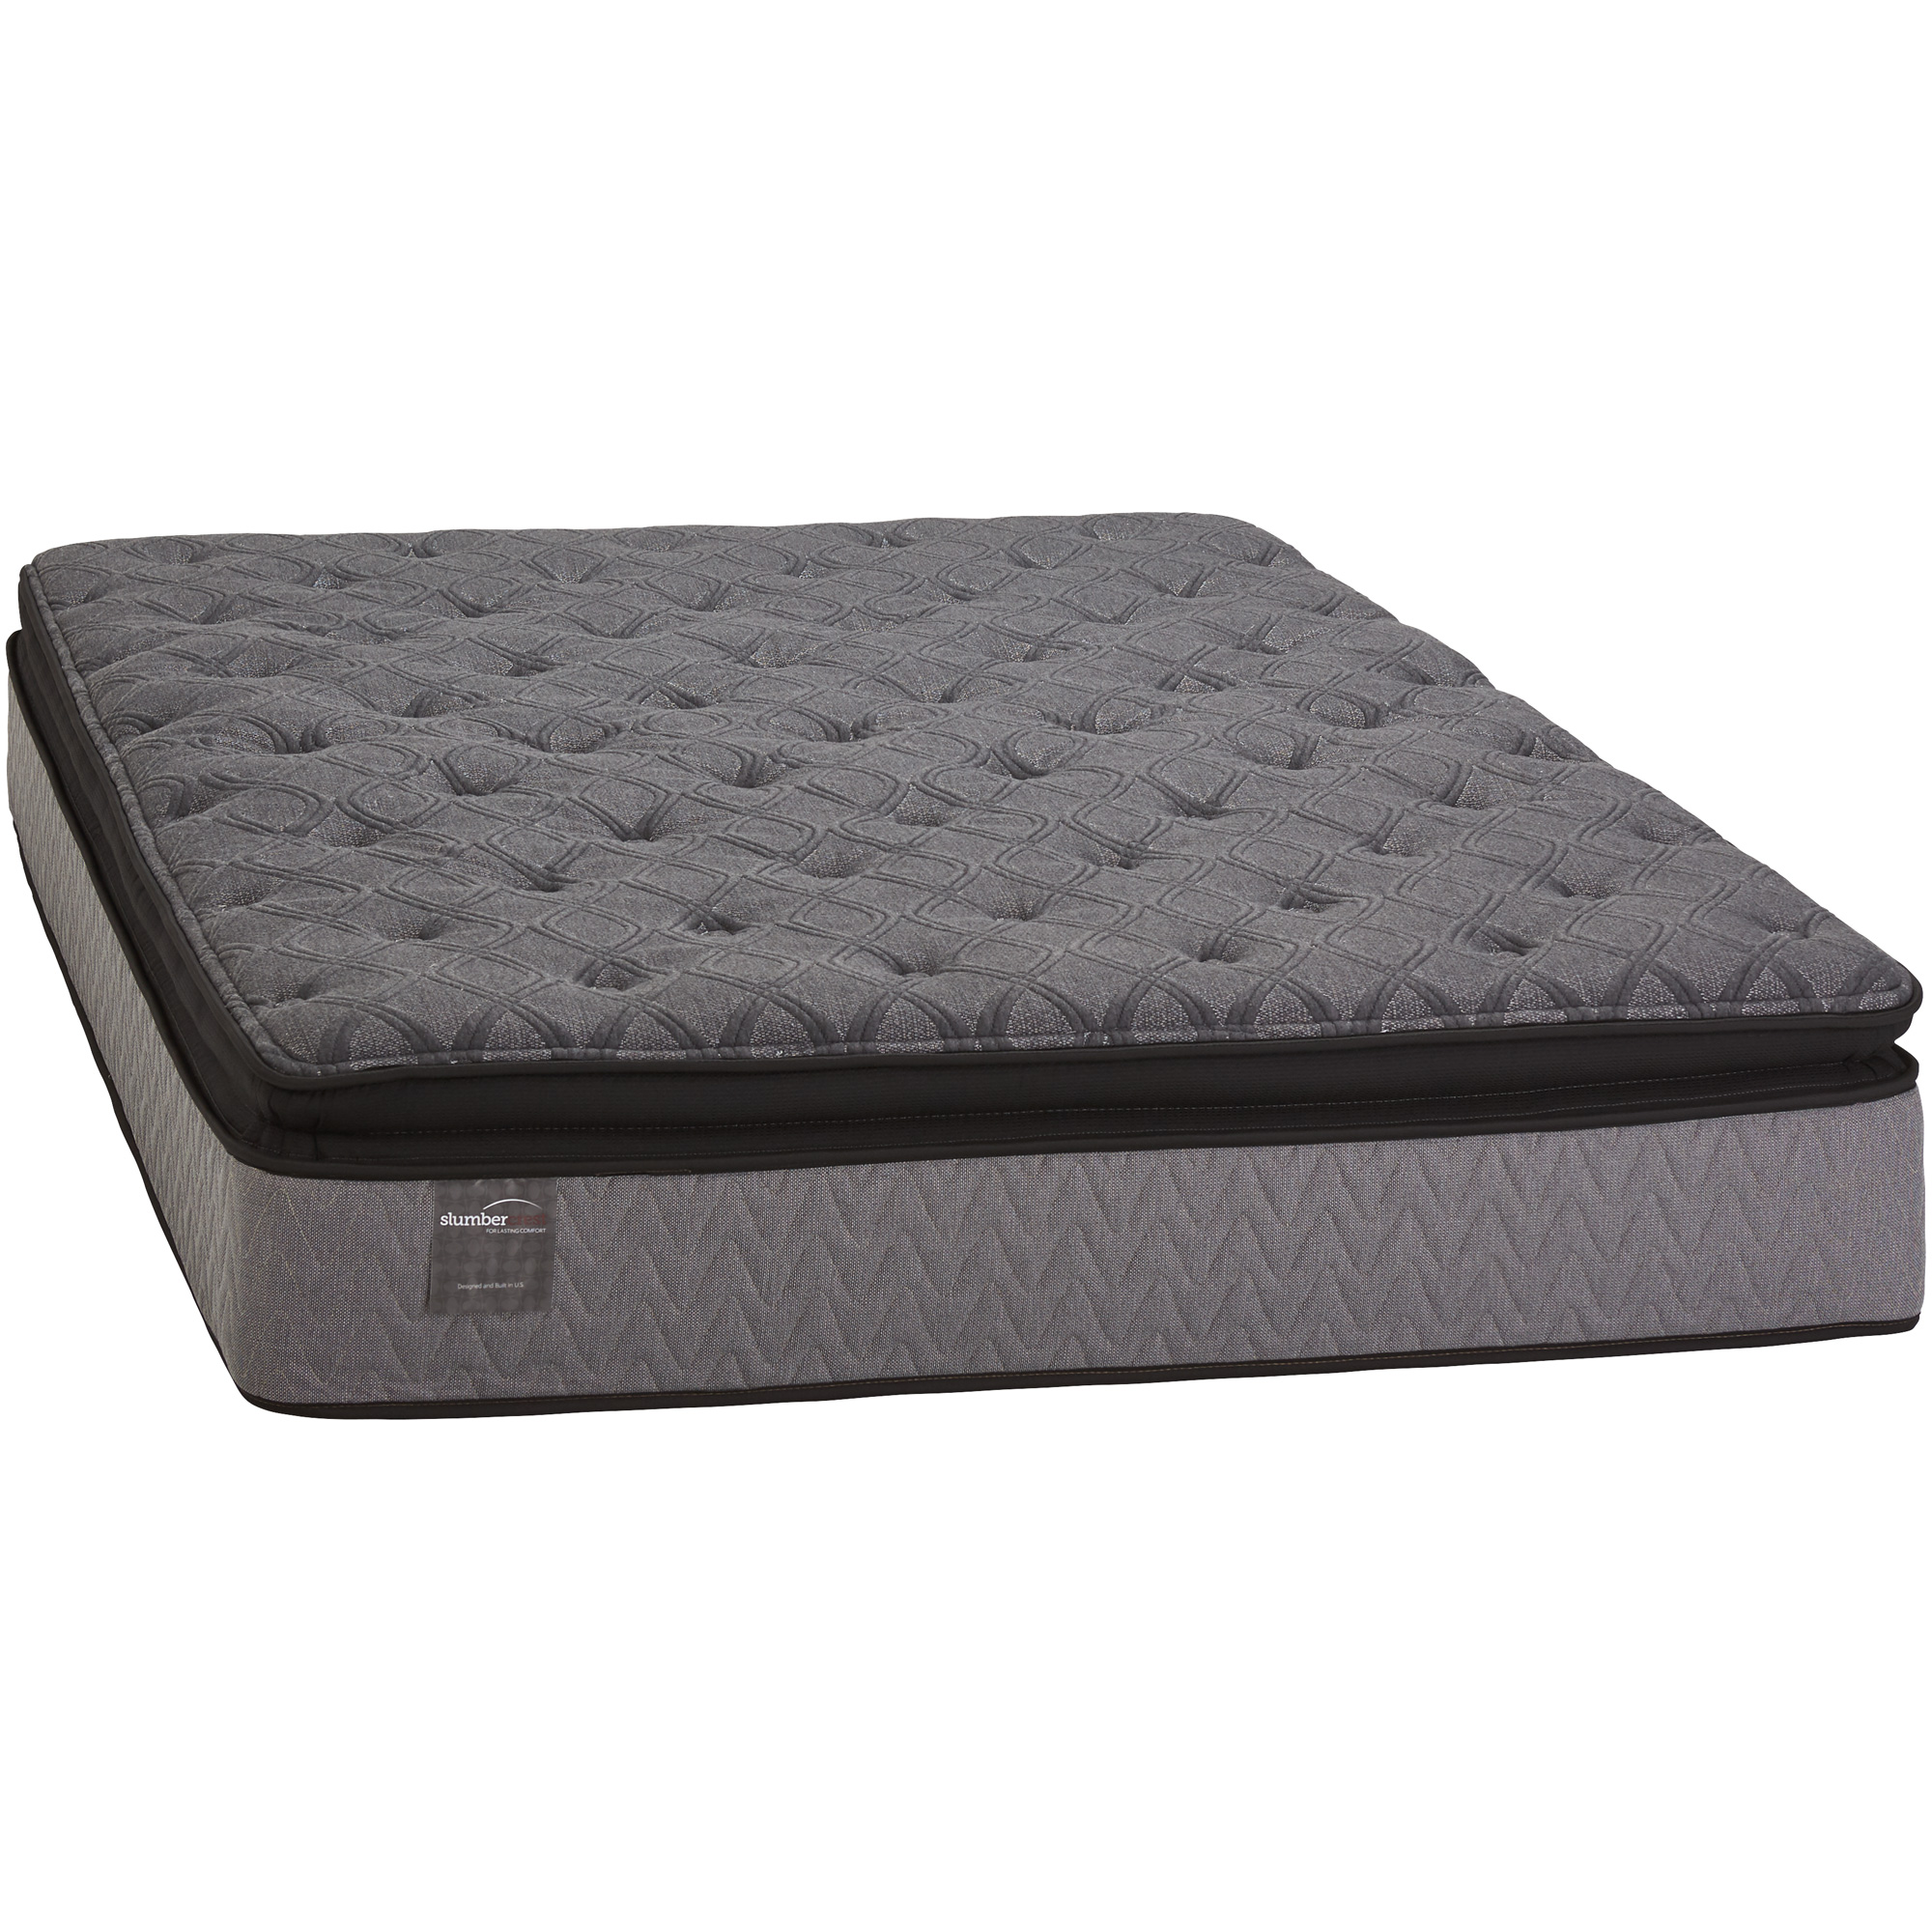 Slumbercrest Plush Pillowtop California King Mattress